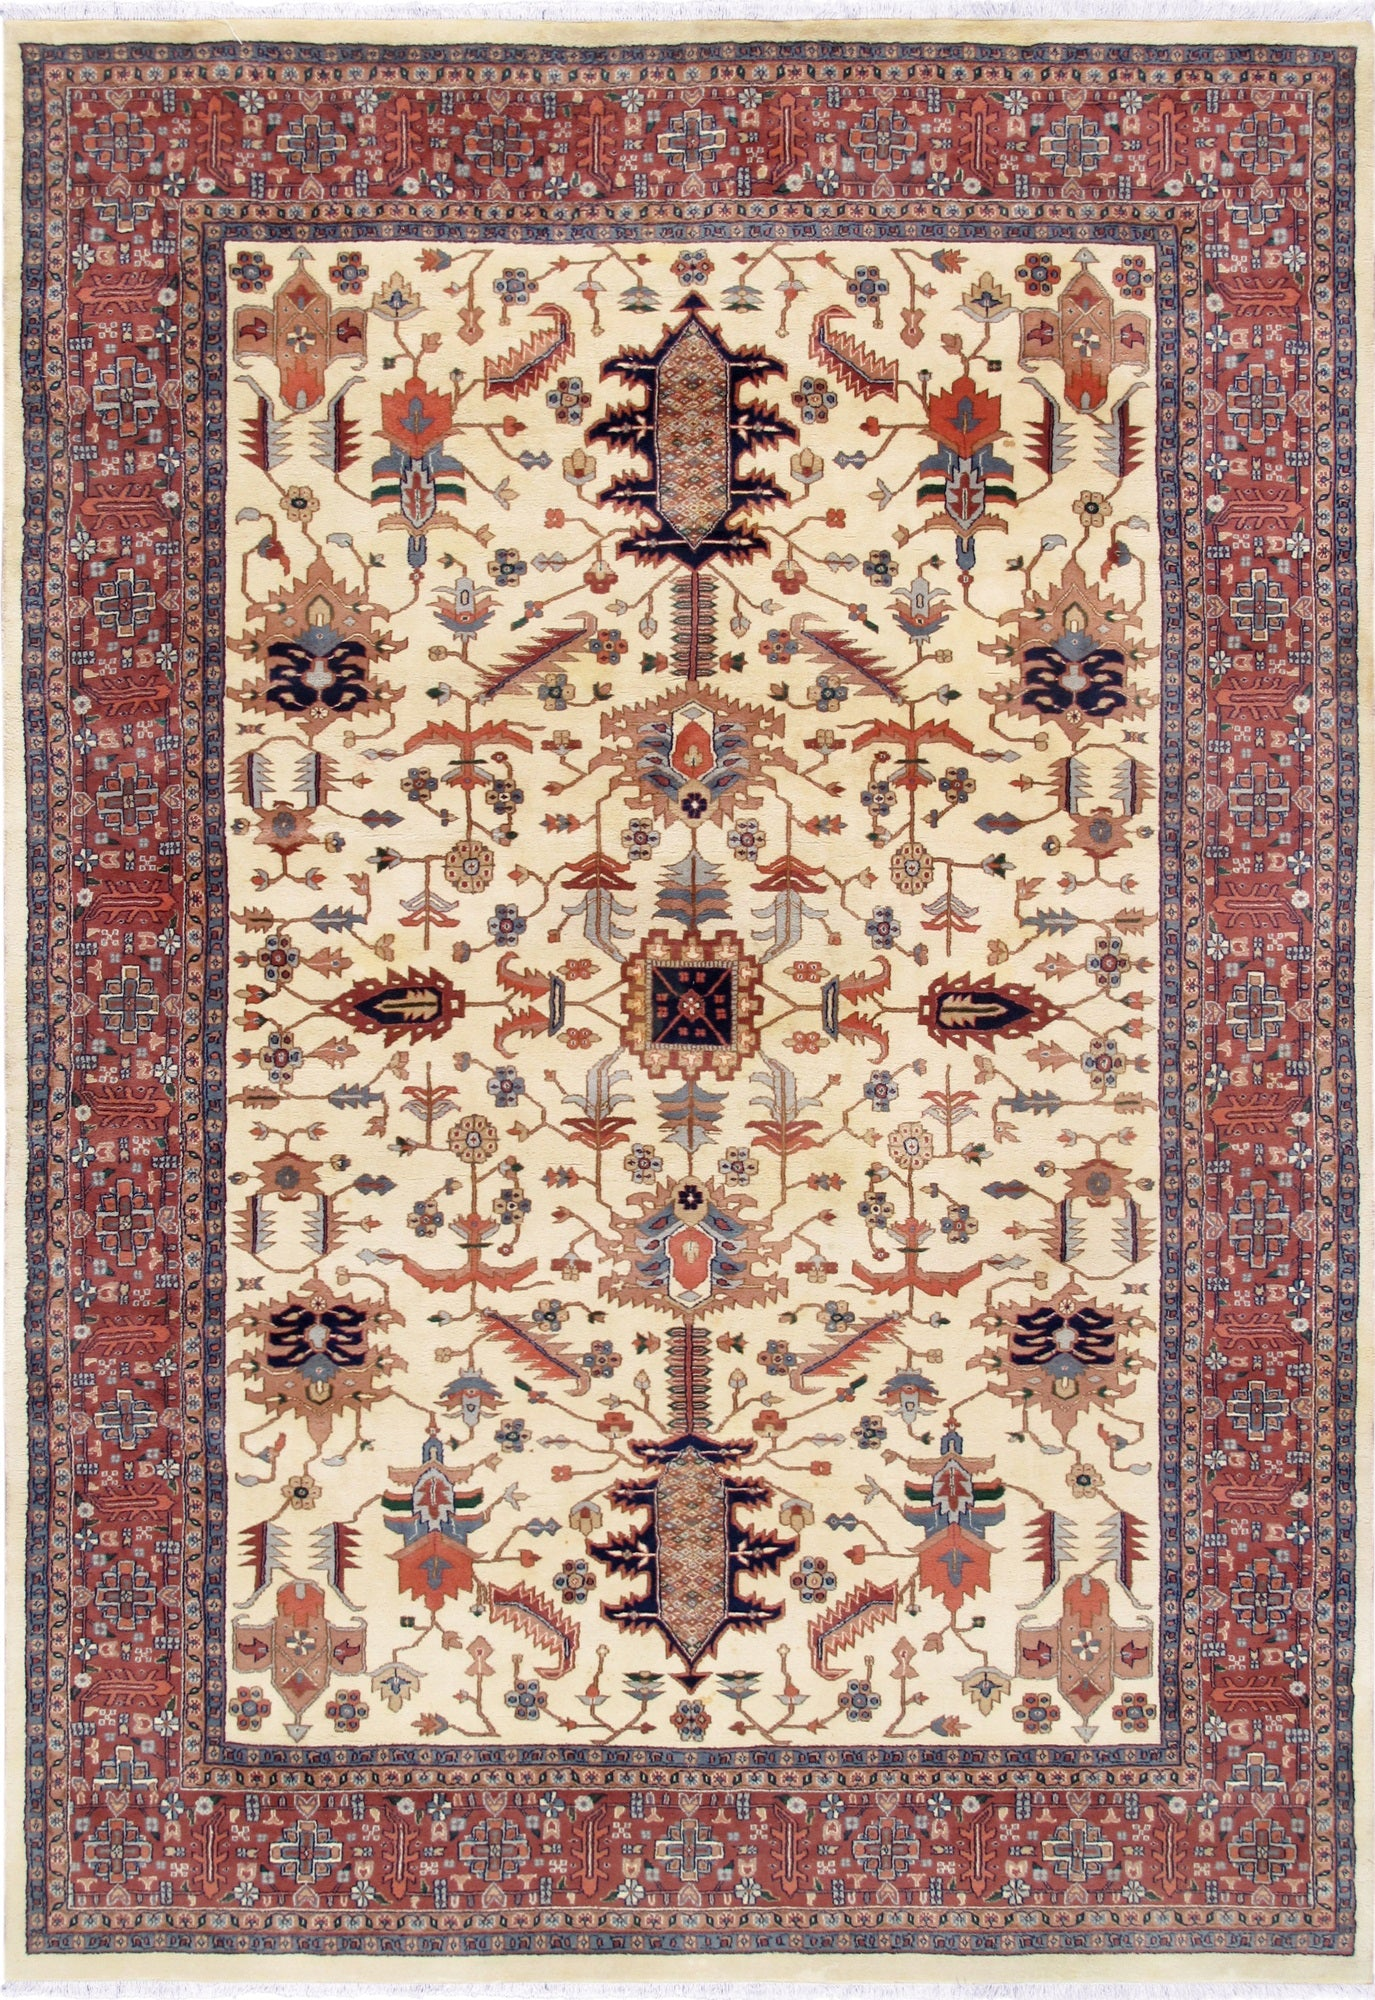 Carpet Culture, Handmade Rugs, Rug, Area Rugs, Shop Rug, Rug Shopping